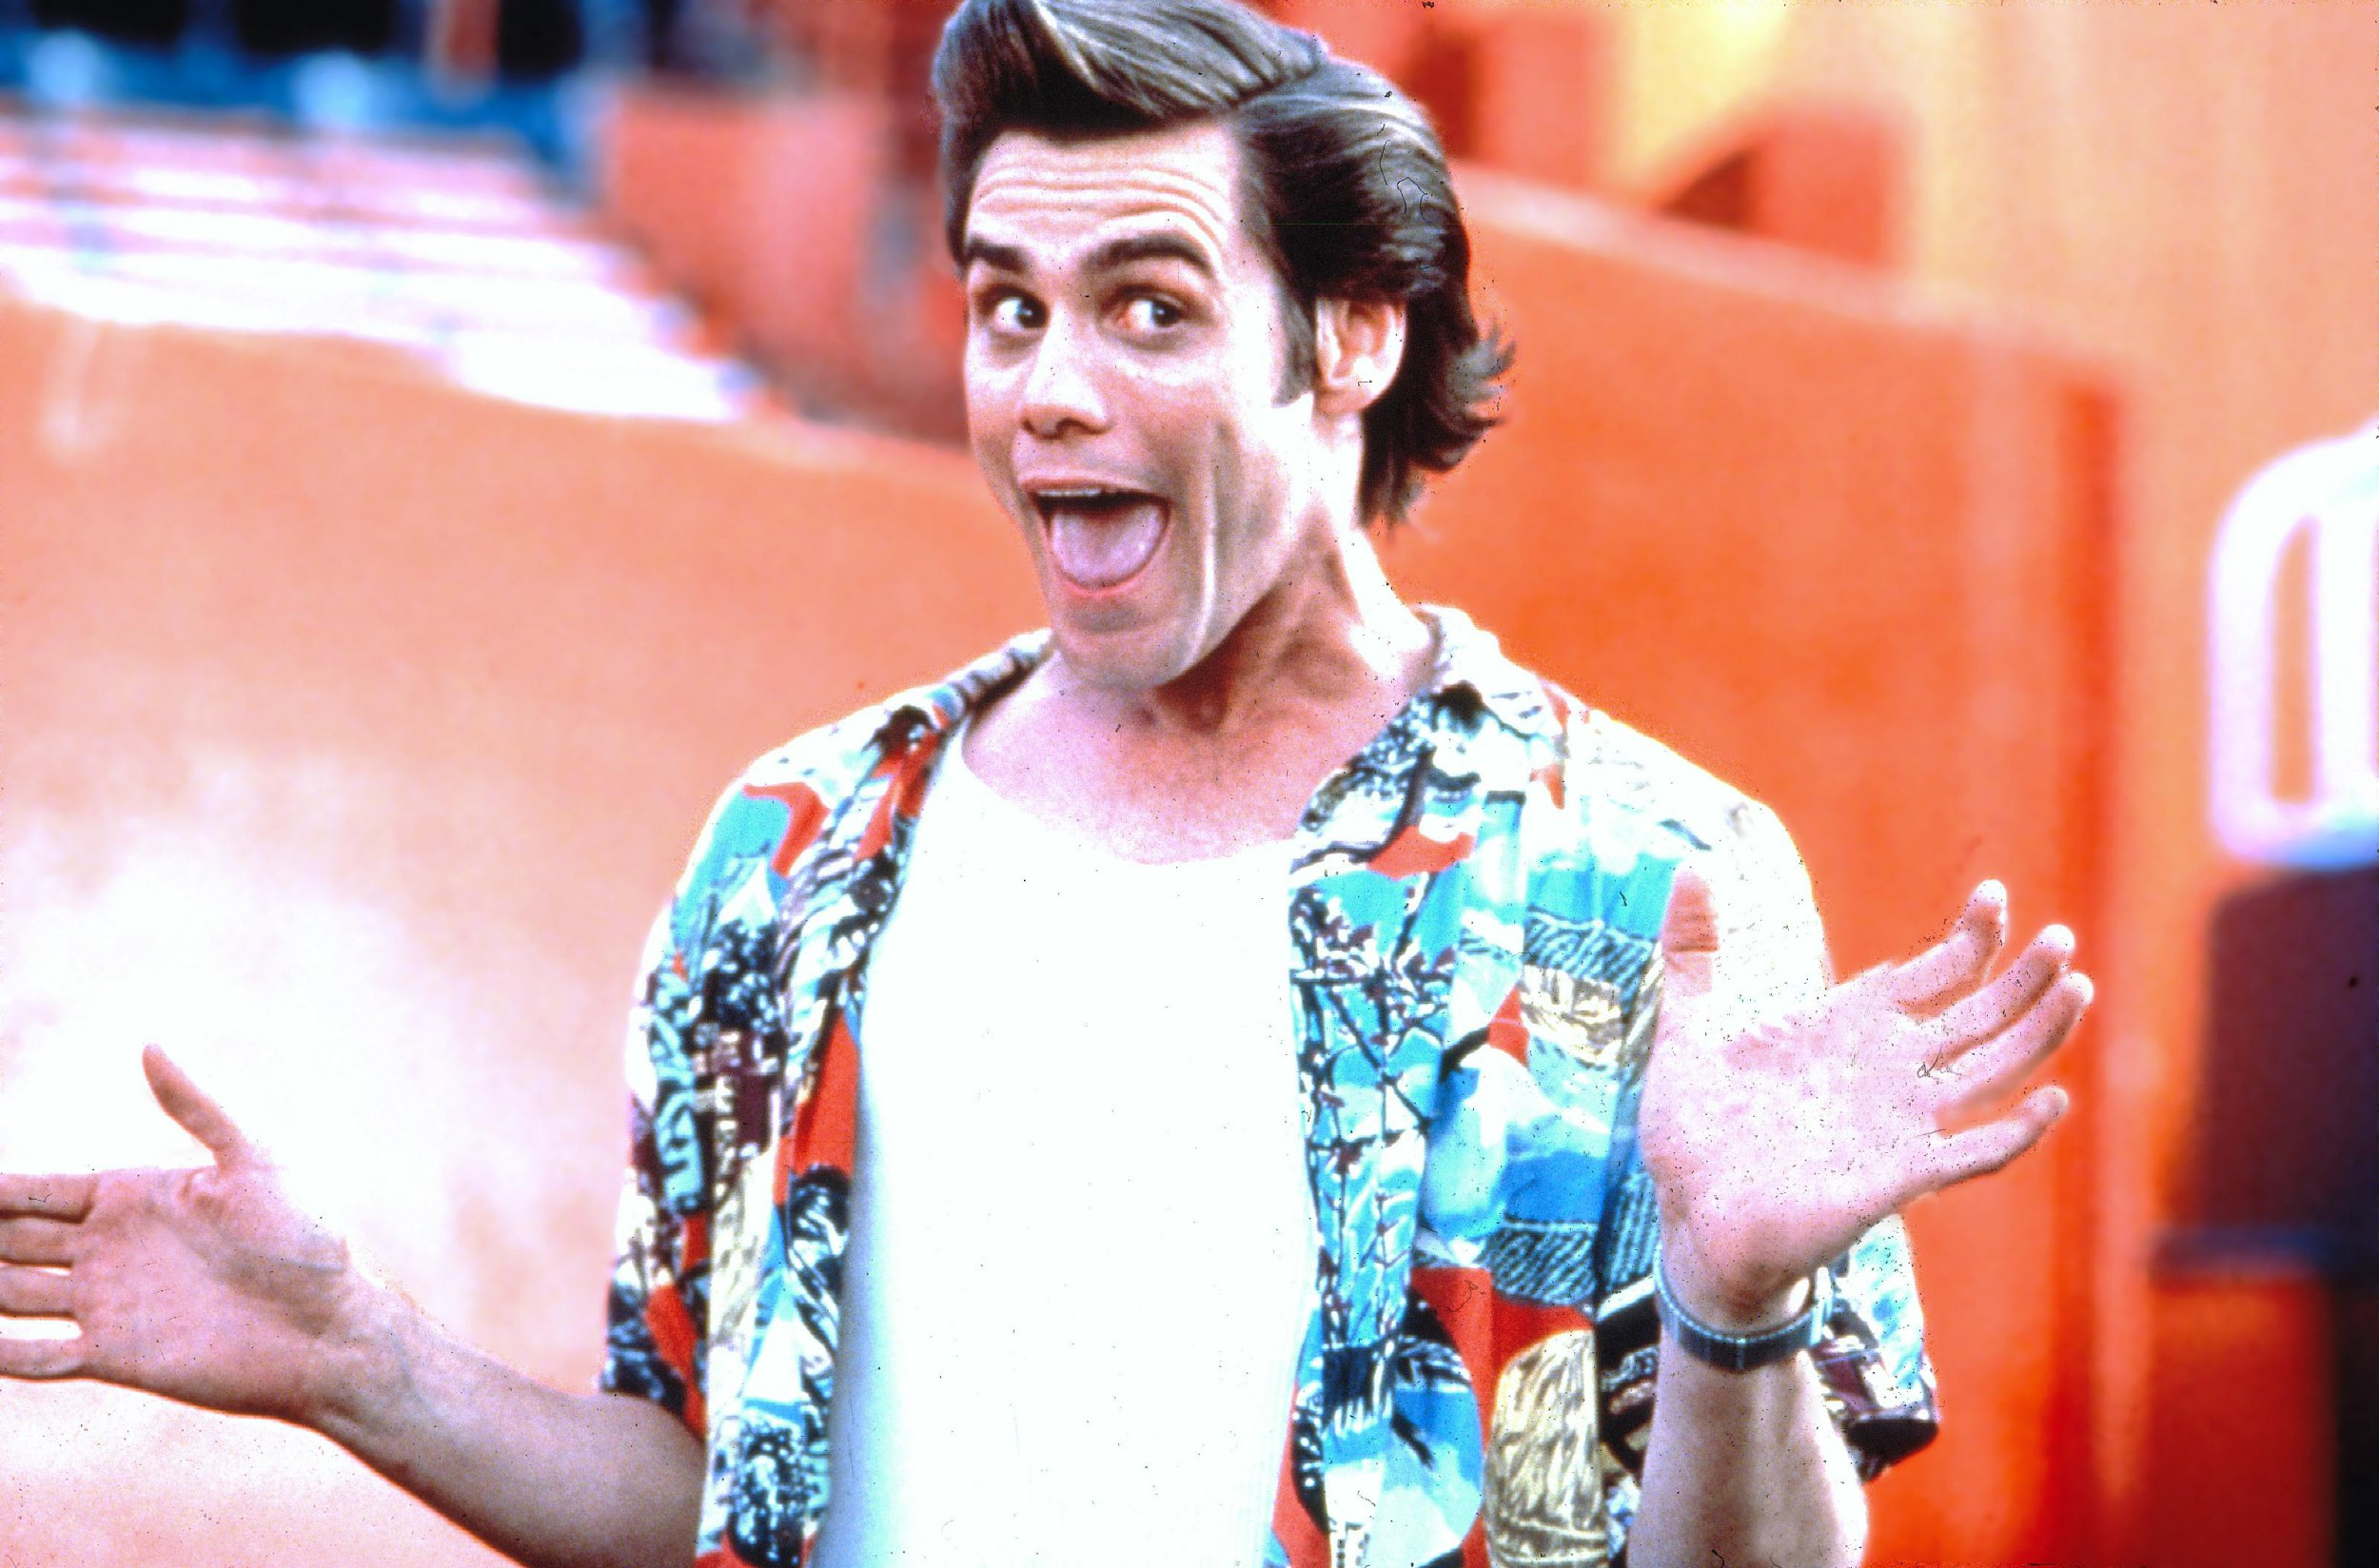 Jim Carrey's Ace Ventura is being lined up for a reboot